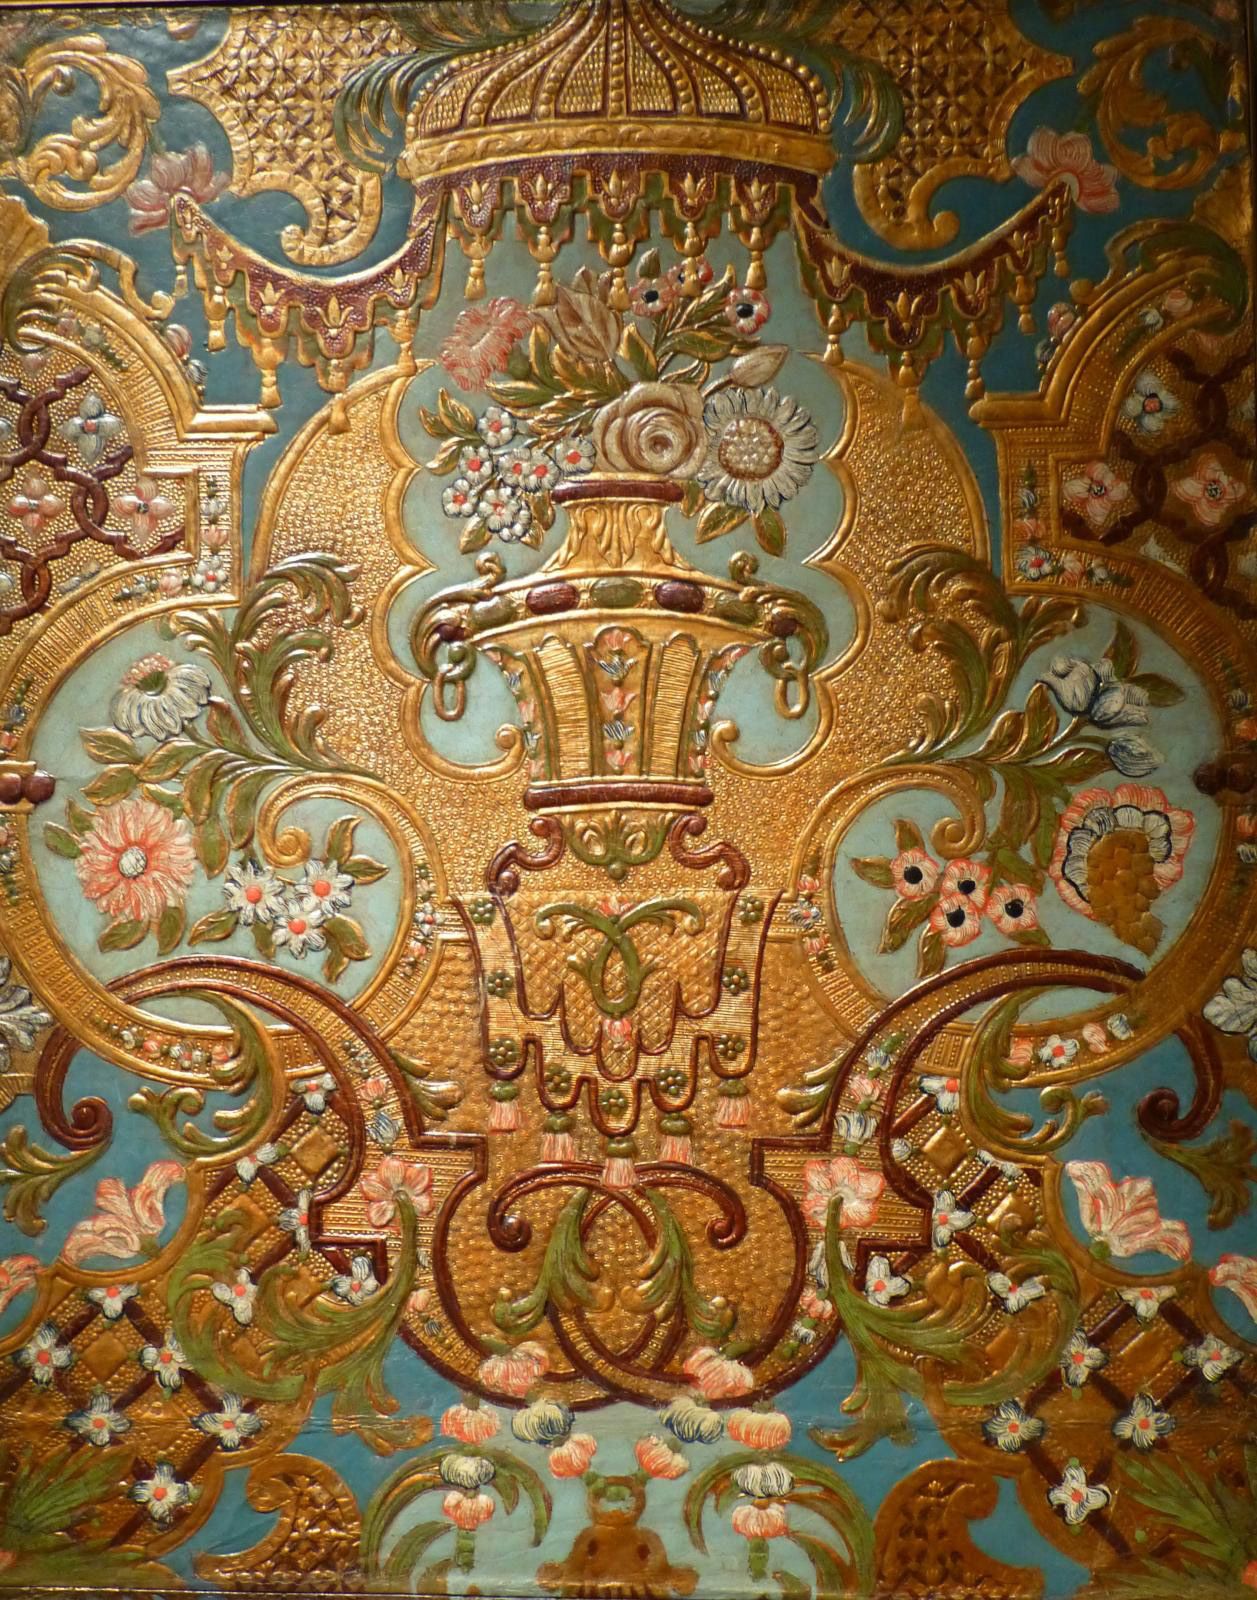 Embossed wrought gold leather, Netherlands, first quarter of the 18th century, 73 x 49 cm, detail, Glass Tielker collection, Hückelhoven,